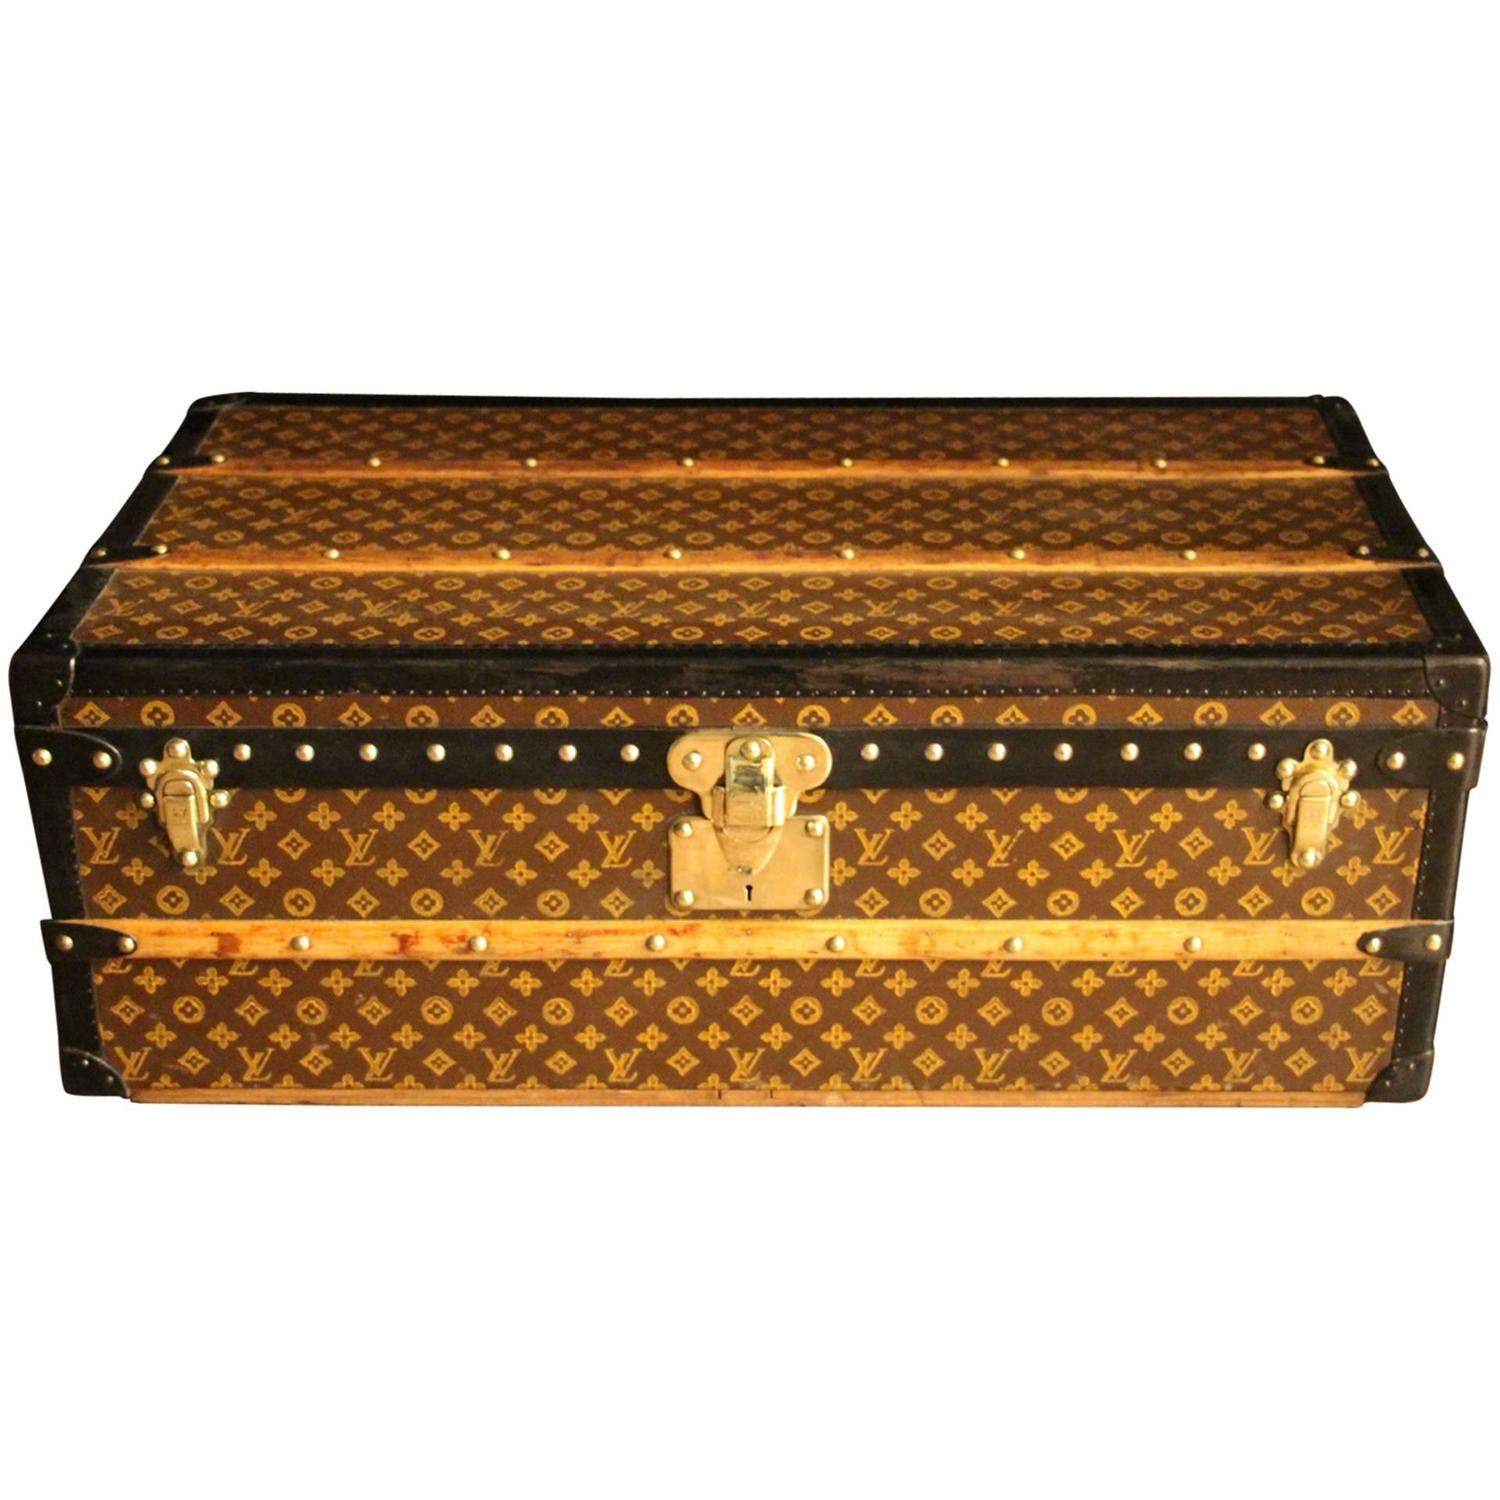 Lv Trunk Coffee Table: 1930s Louis Vuitton Stenciled Monogram Cabin Steamer Trunk